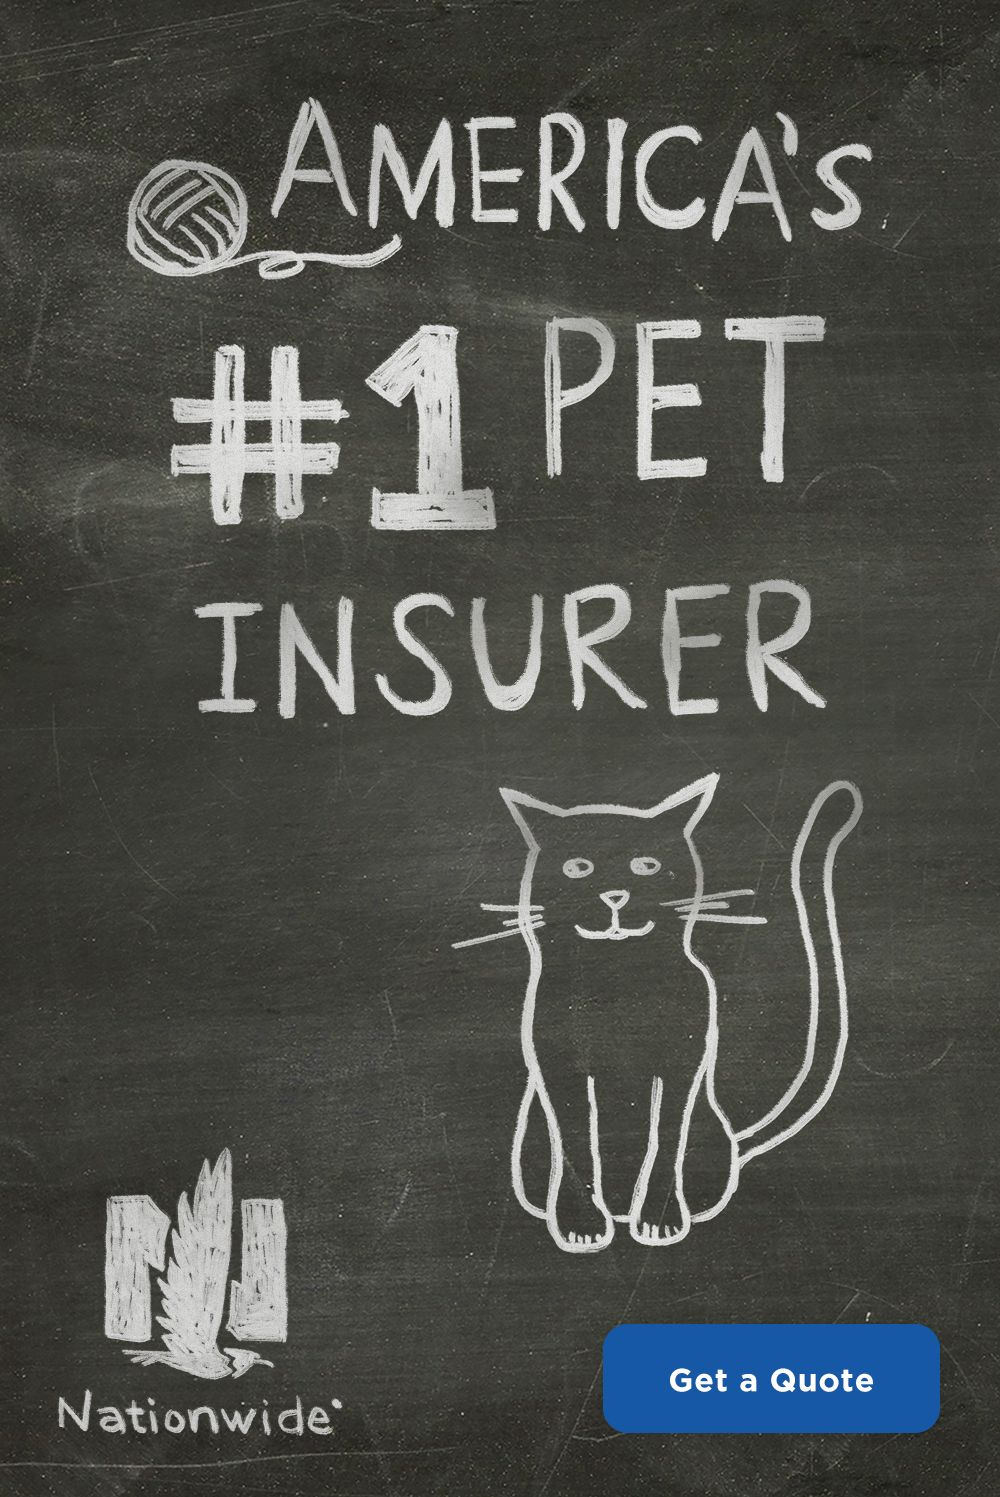 Pin By Leonora Desimone On Animals Pet Health Insurance Pet Health Pet Insurance